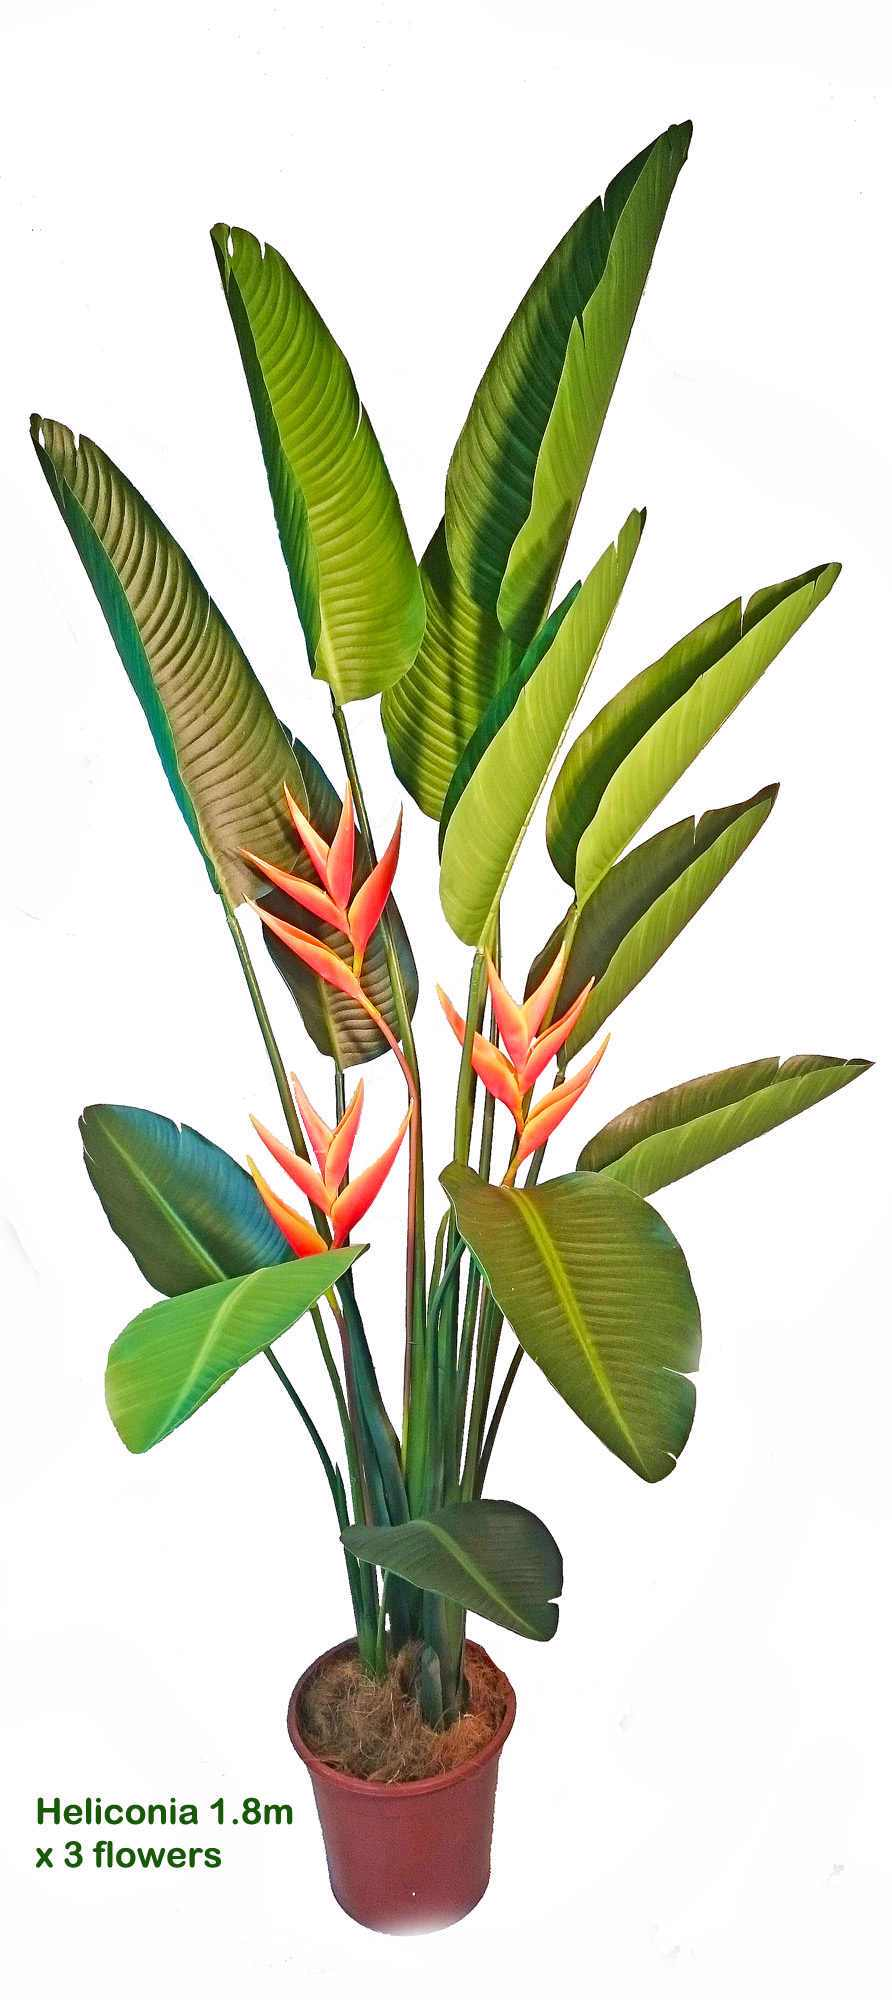 Heliconia Palms- Flowering 1.6m with 2 flowers